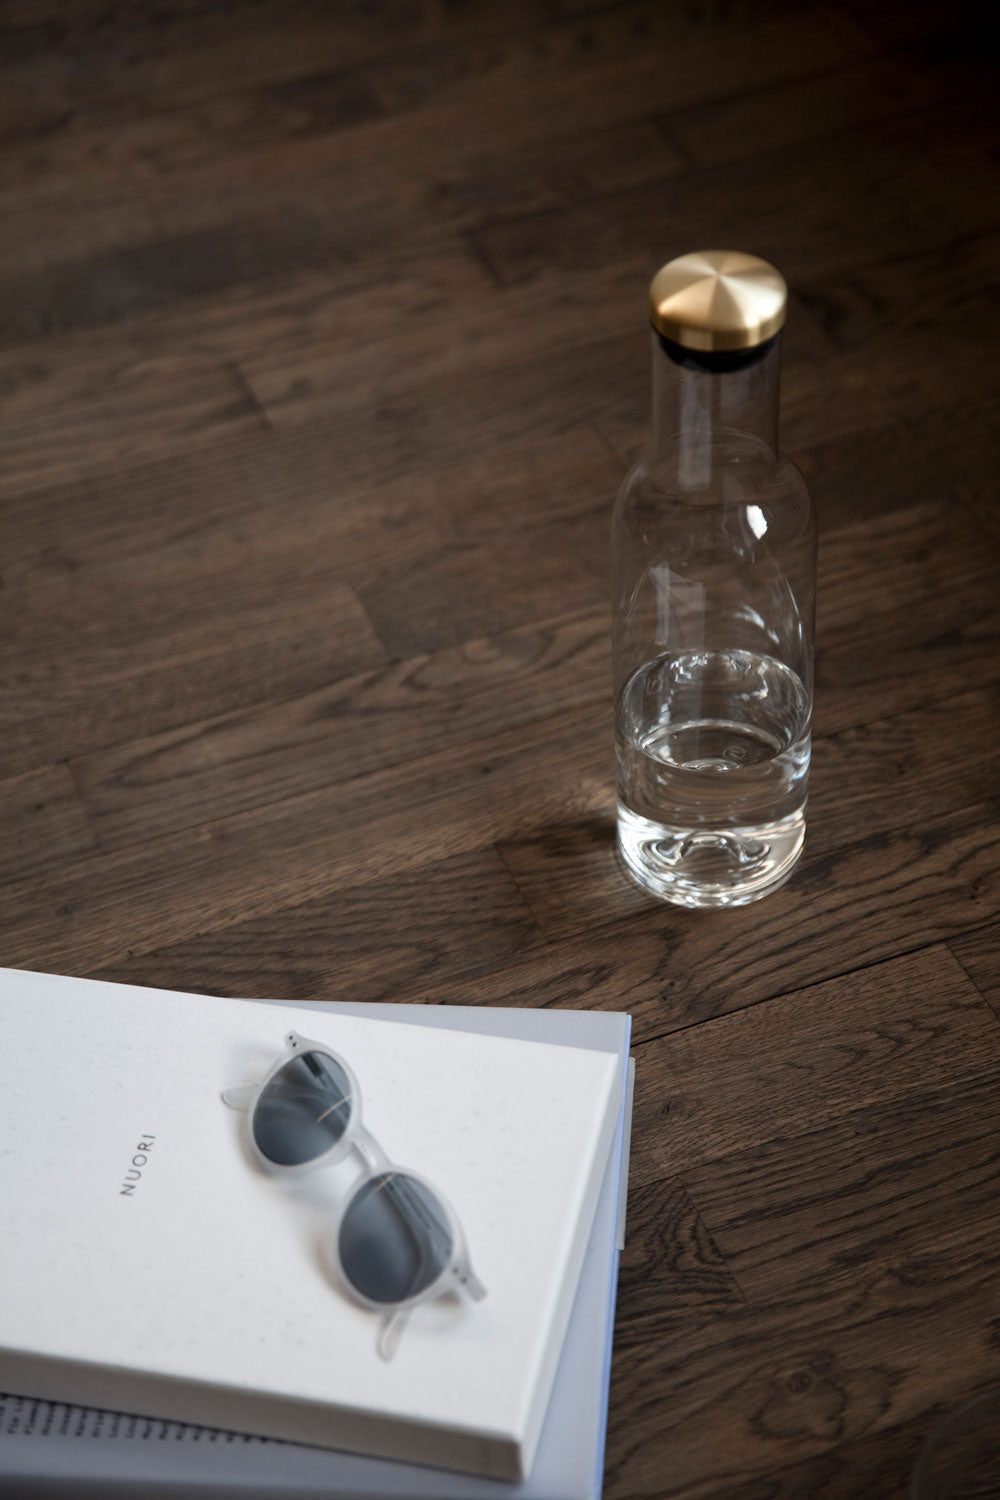 Modern Minimalist Menu Bottle Carafe